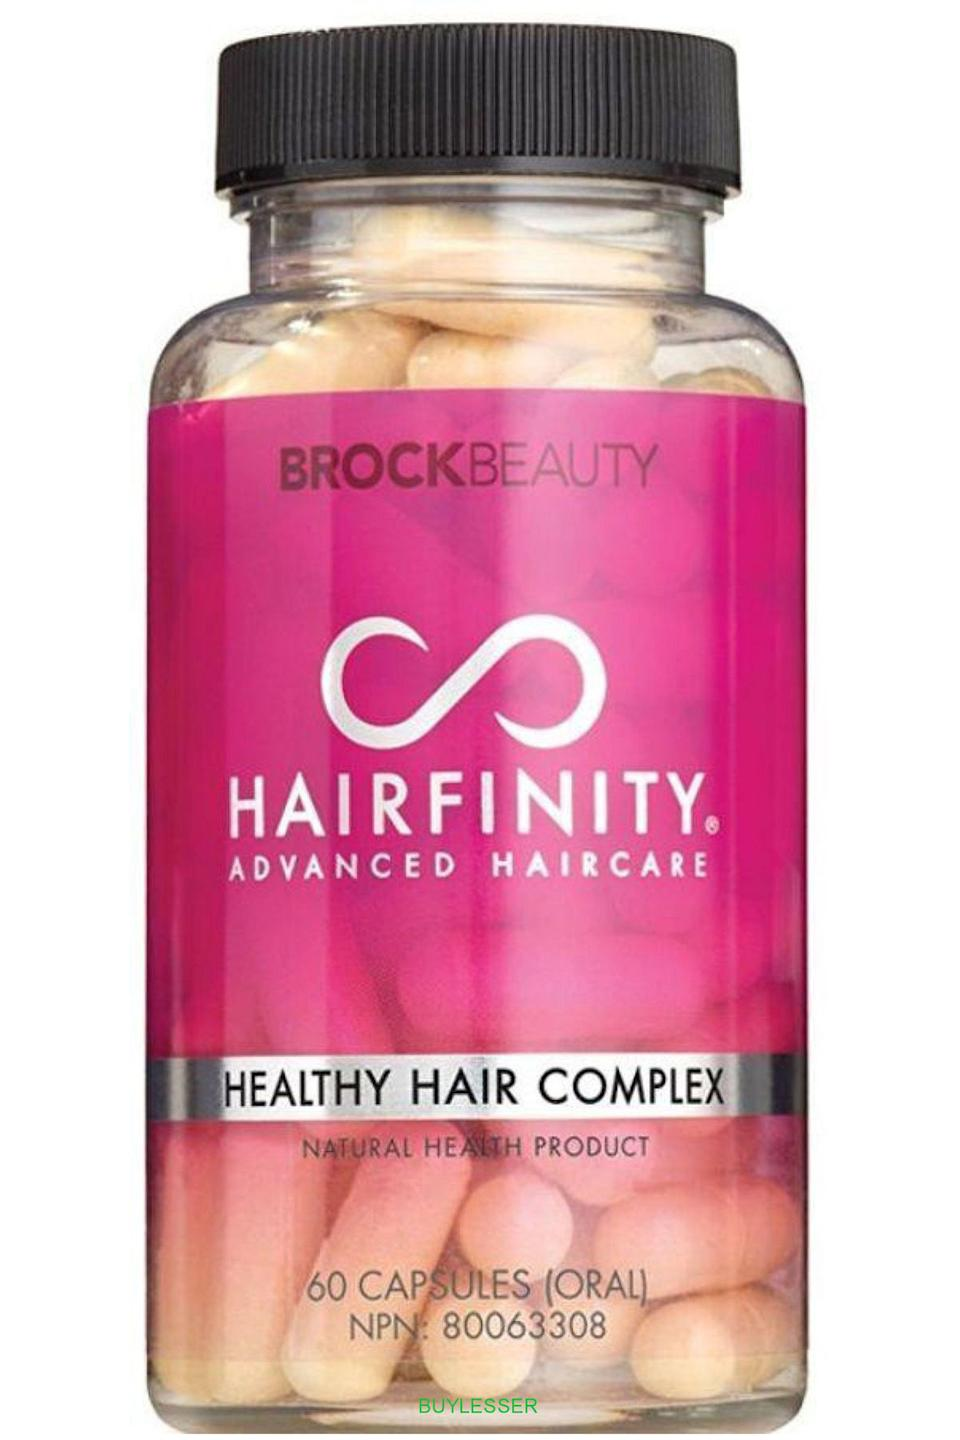 """<p><strong>Hairfinity</strong></p><p>amazon.com</p><p><strong>$23.48</strong></p><p><a href=""""https://www.amazon.com/dp/B00JAJNDZ6?tag=syn-yahoo-20&ascsubtag=%5Bartid%7C10056.g.7807%5Bsrc%7Cyahoo-us"""" rel=""""nofollow noopener"""" target=""""_blank"""" data-ylk=""""slk:Shop Now"""" class=""""link rapid-noclick-resp"""">Shop Now</a></p><p>Each capsule is packed with skin-loving vitamins A and D to help keep the scalp comfy. And since scalp health is essential to the growth of strong, lustrous hair, that infusion of nutrients makes your mile-long hair goals that much easier to achieve.</p>"""